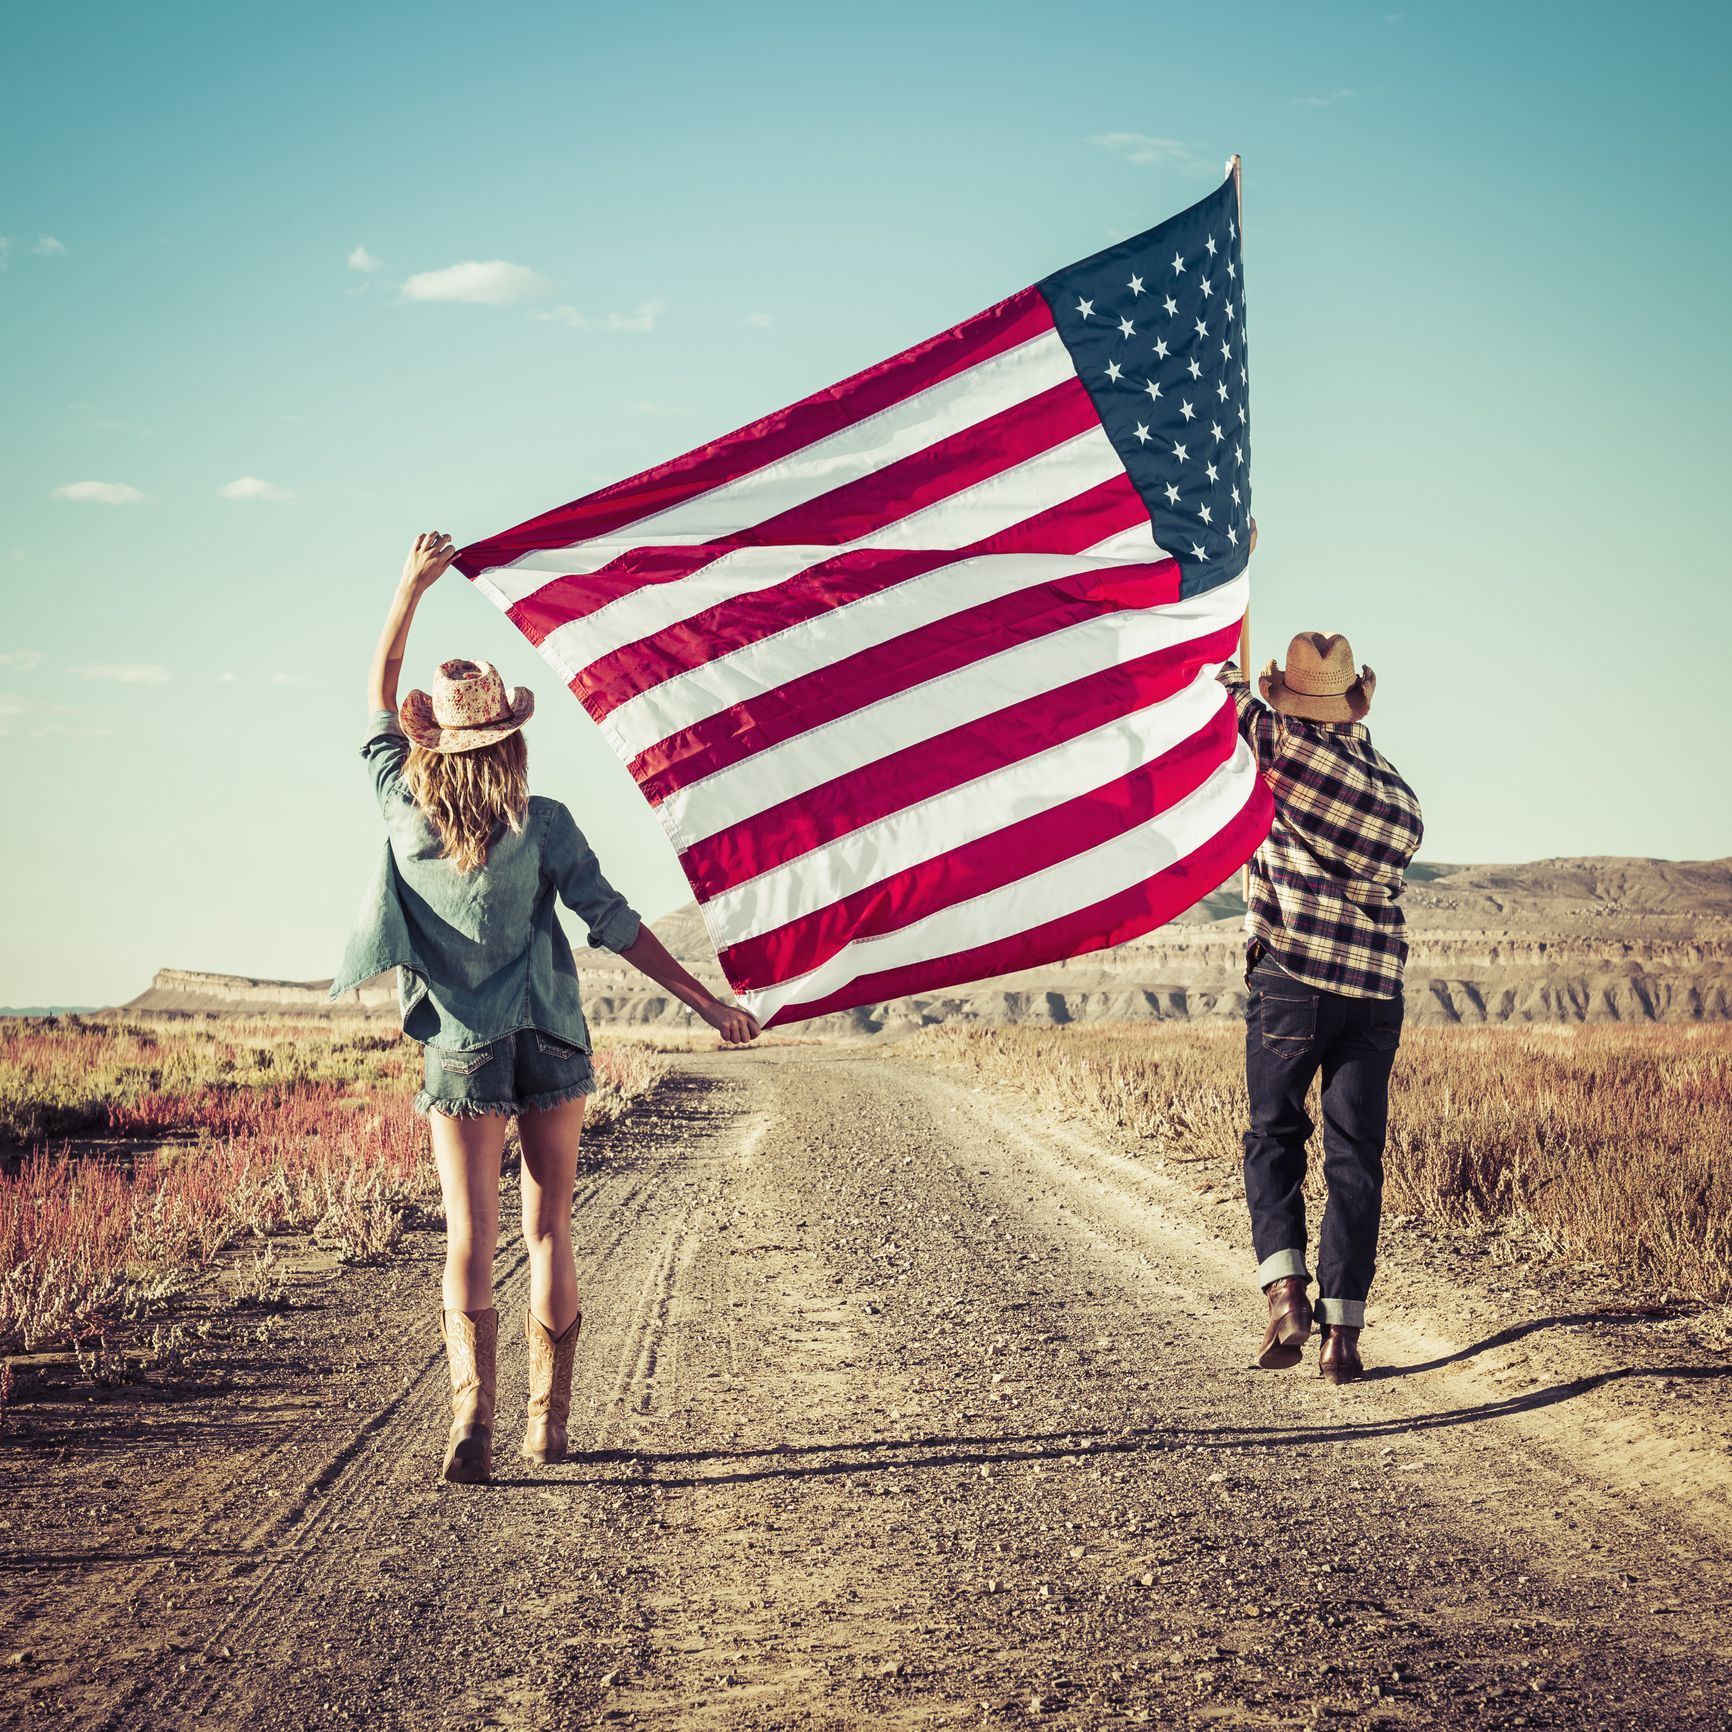 25 Best Memorial Day Songs - Patriotic Songs for Memorial Day